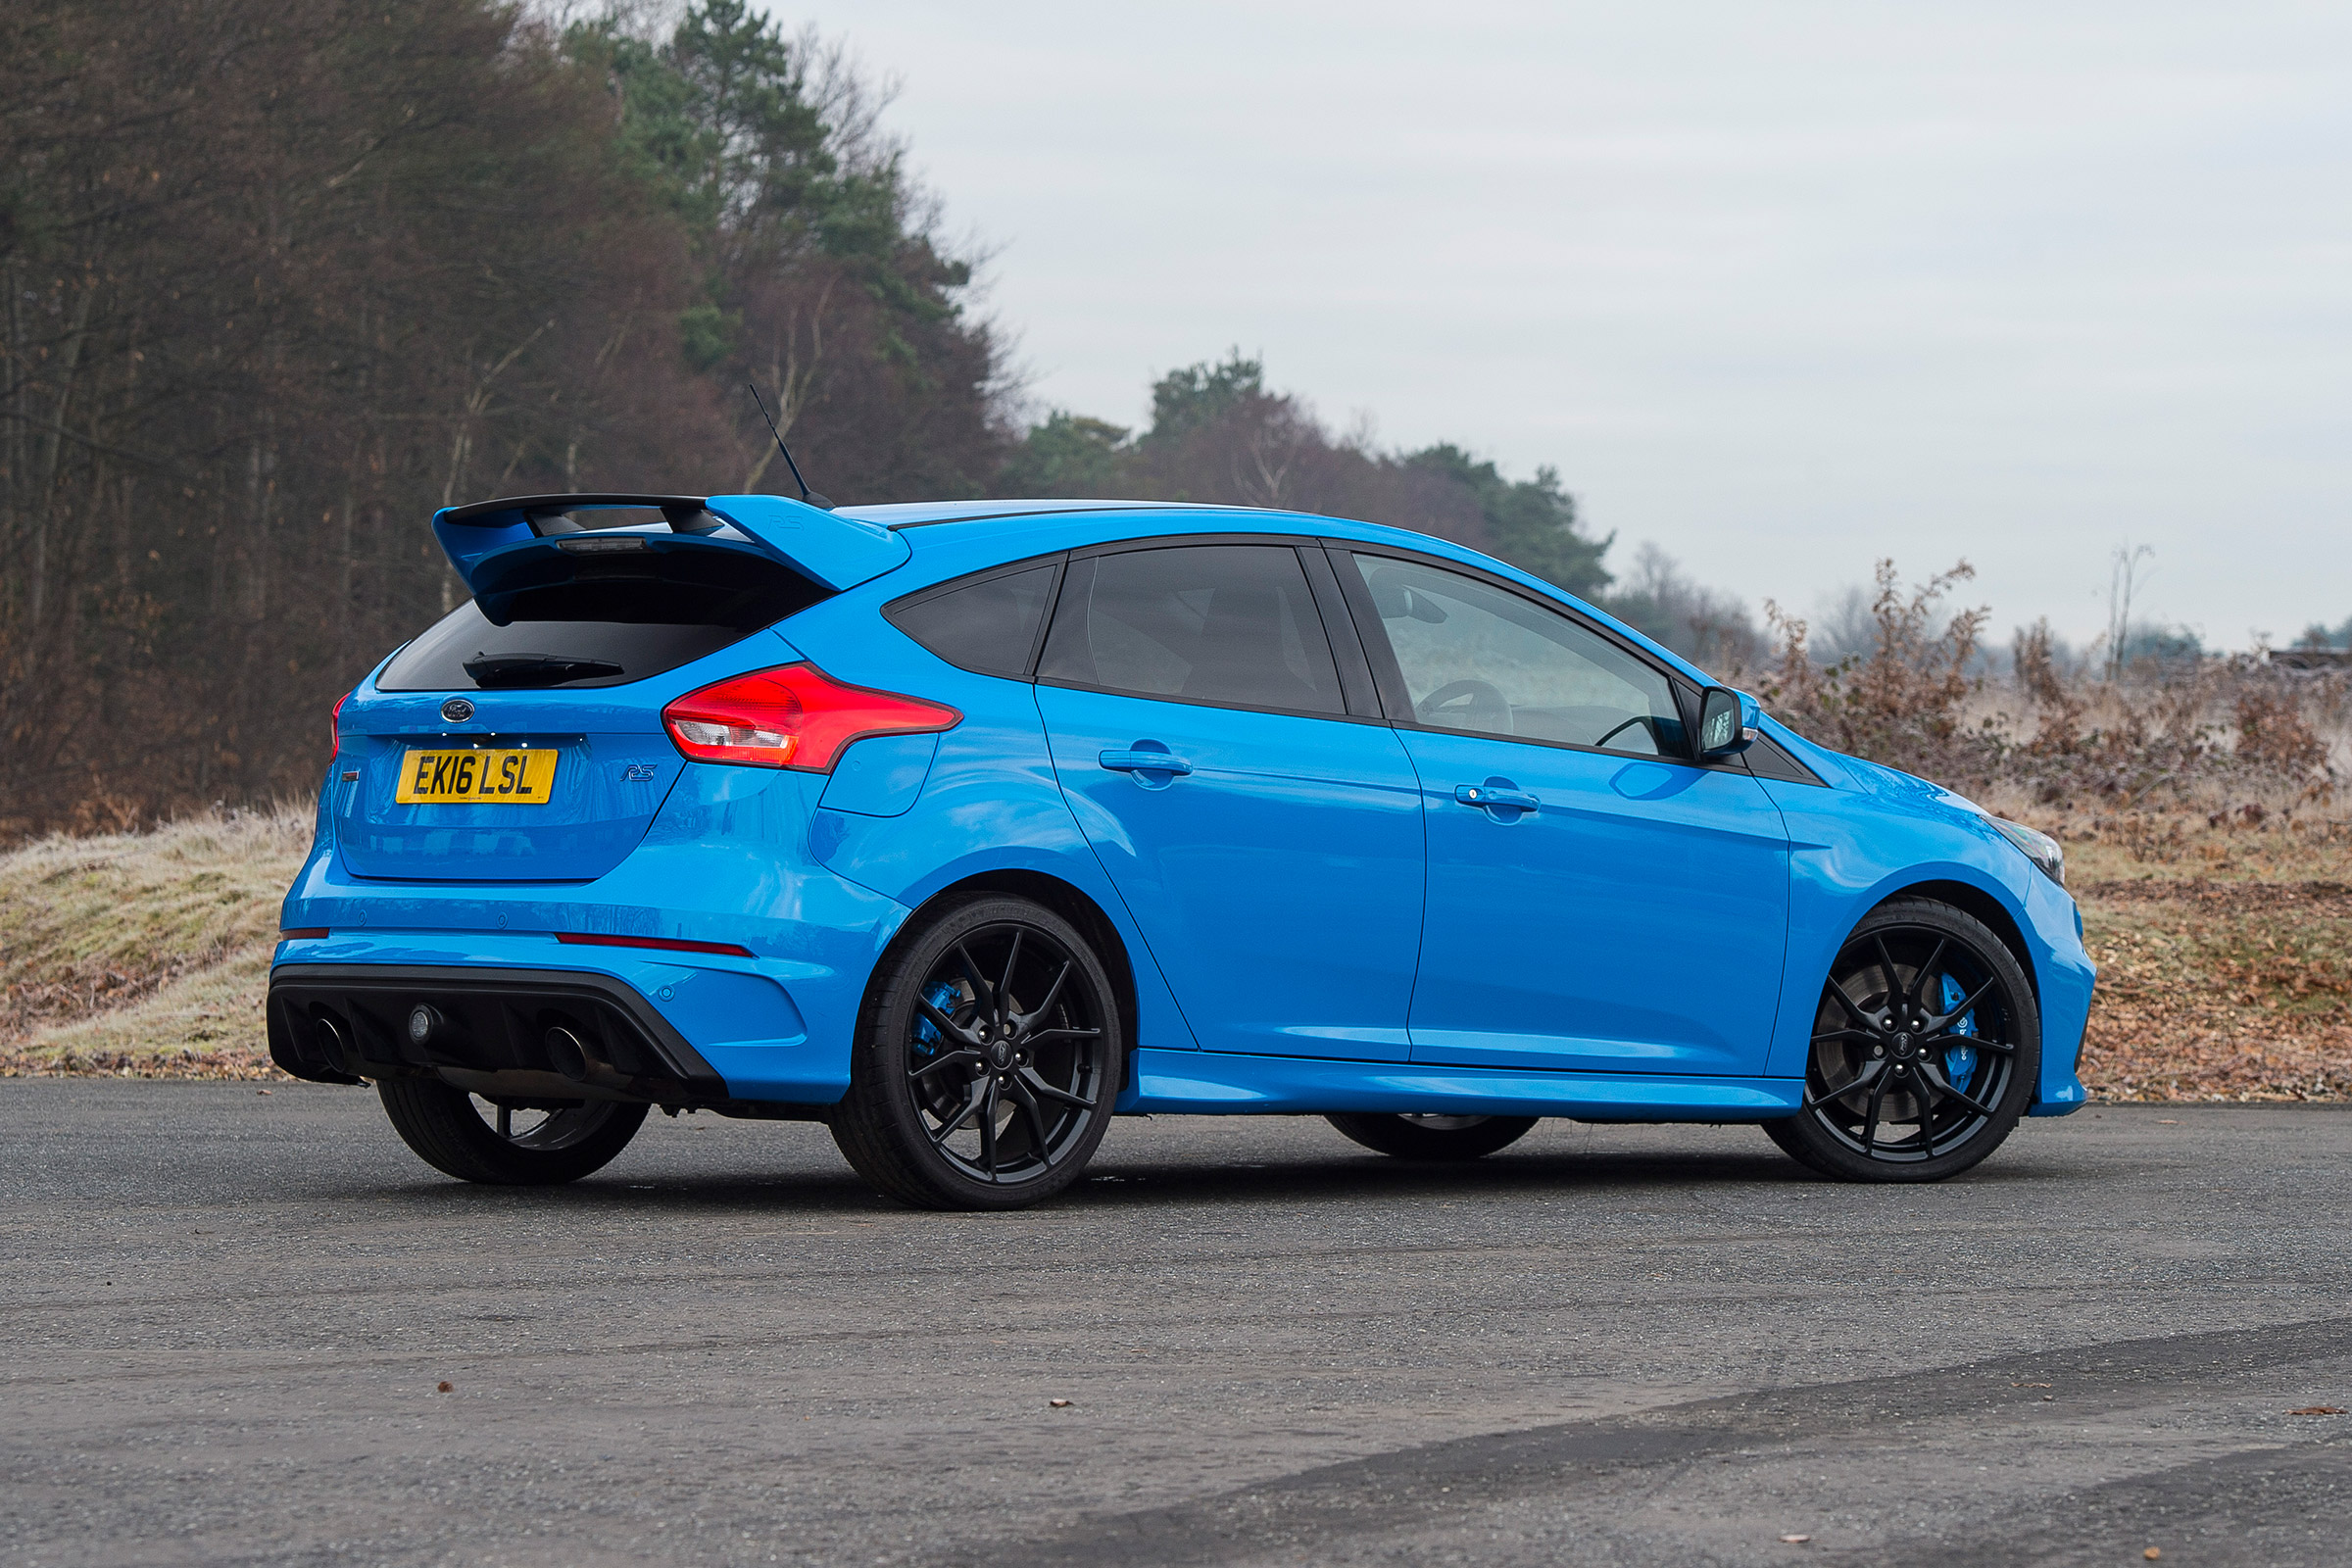 2017 Ford Focus RS Blue Exterior Rear And Side (Photo 3 of 23)